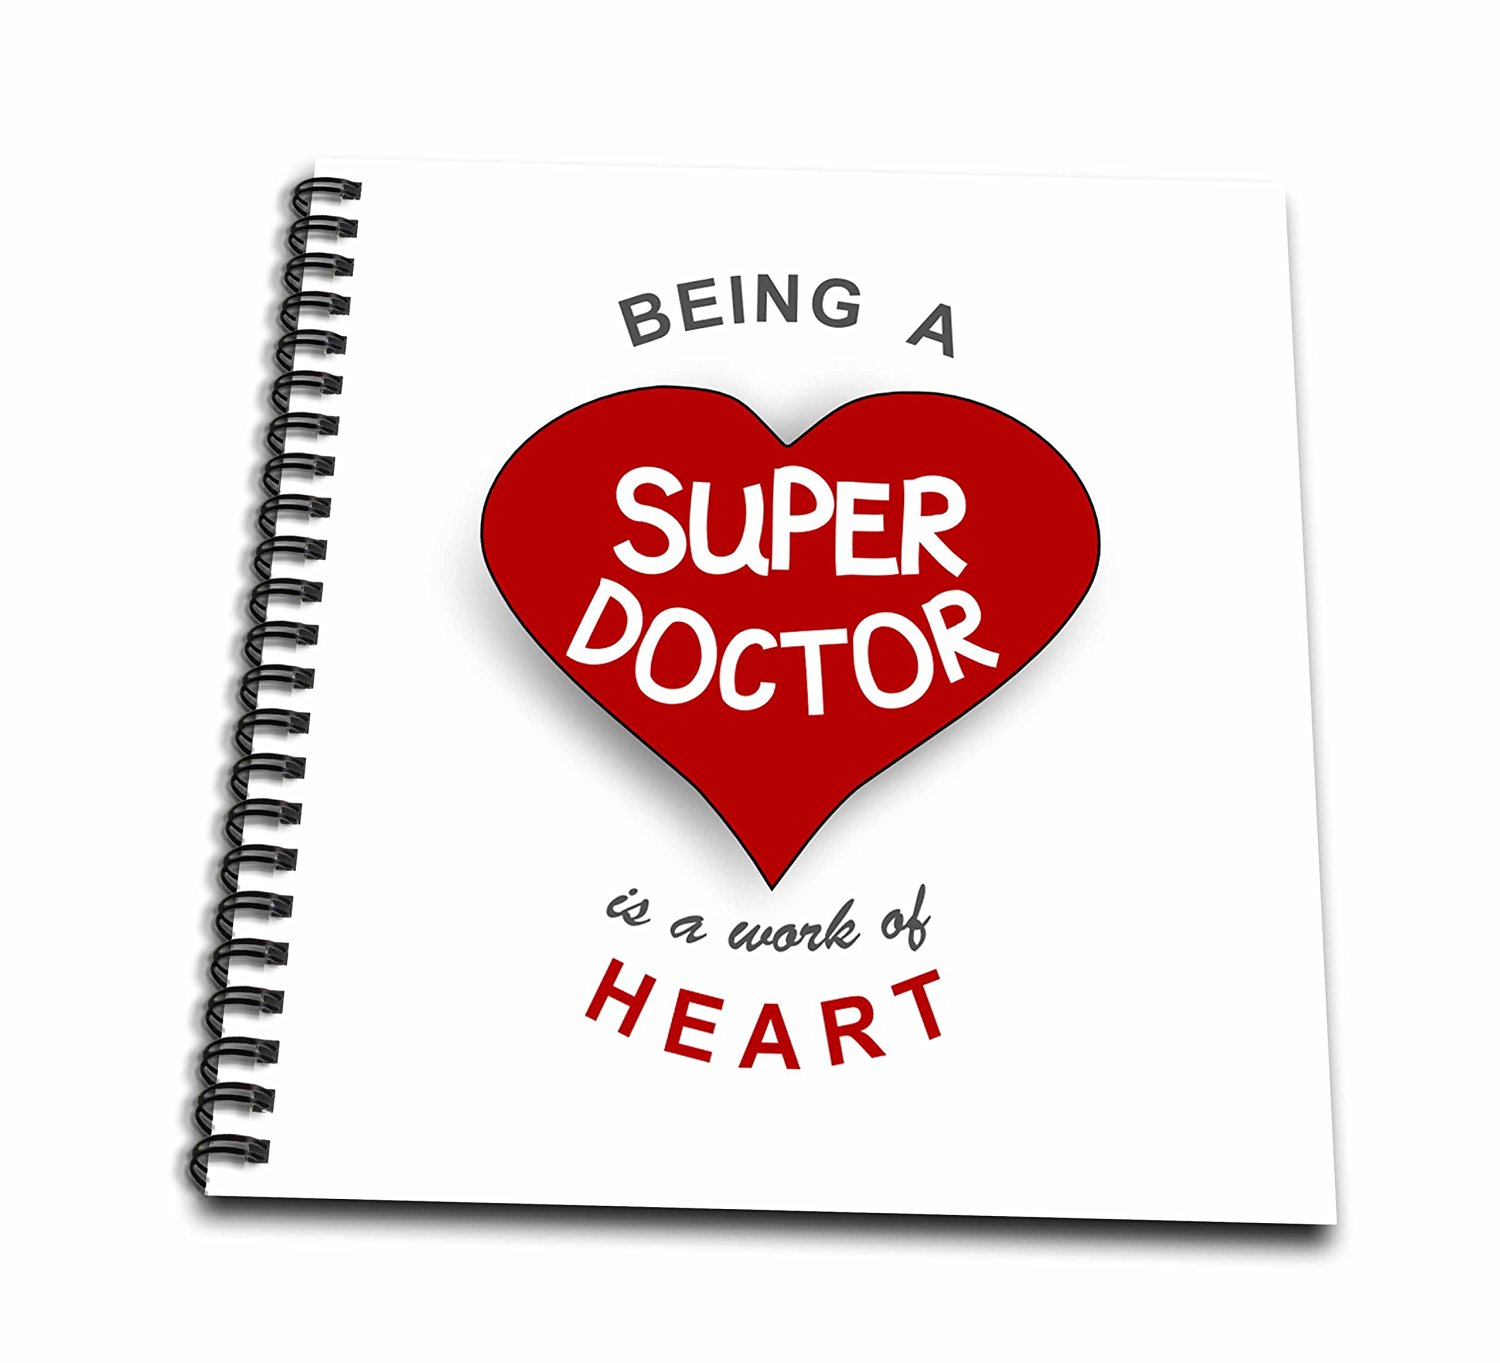 InspirationzStore Love series - Being a Super Doctor is a work of Heart - appreciating good medical Dr - Memory Book 12 x 12 inch (db_183864_2)